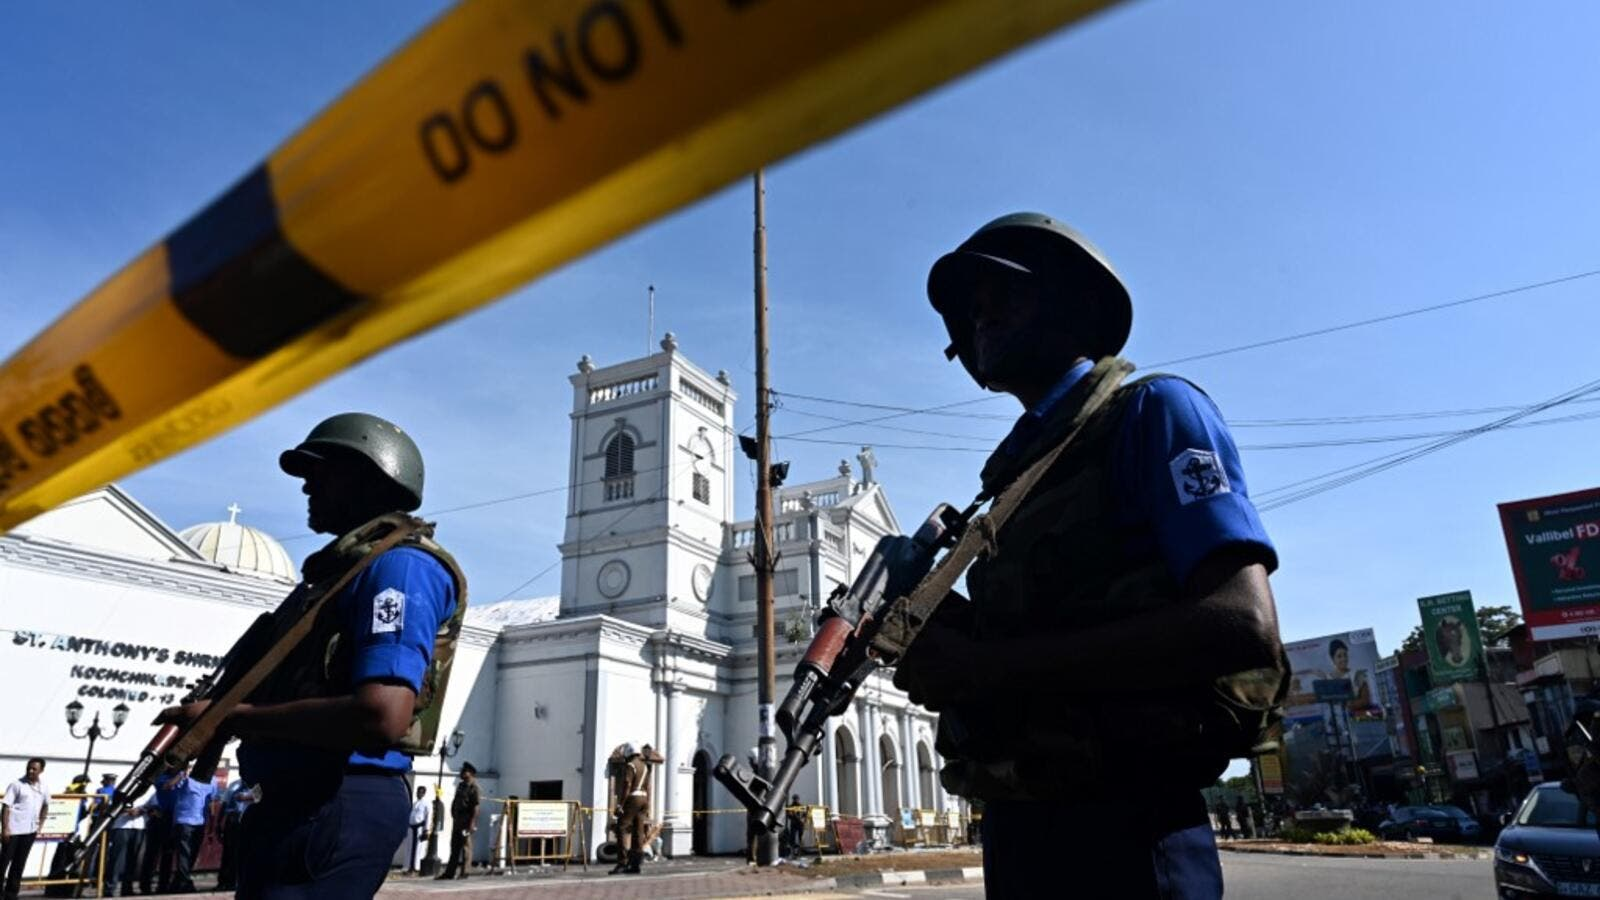 Security personnel stand guard outside St. Anthony's Shrine in Colombo on April 22, 2019, a day after the church was hit in a series of bomb blasts targeting churches and luxury hotels in Sri Lanka.  Jewel SAMAD / AFP